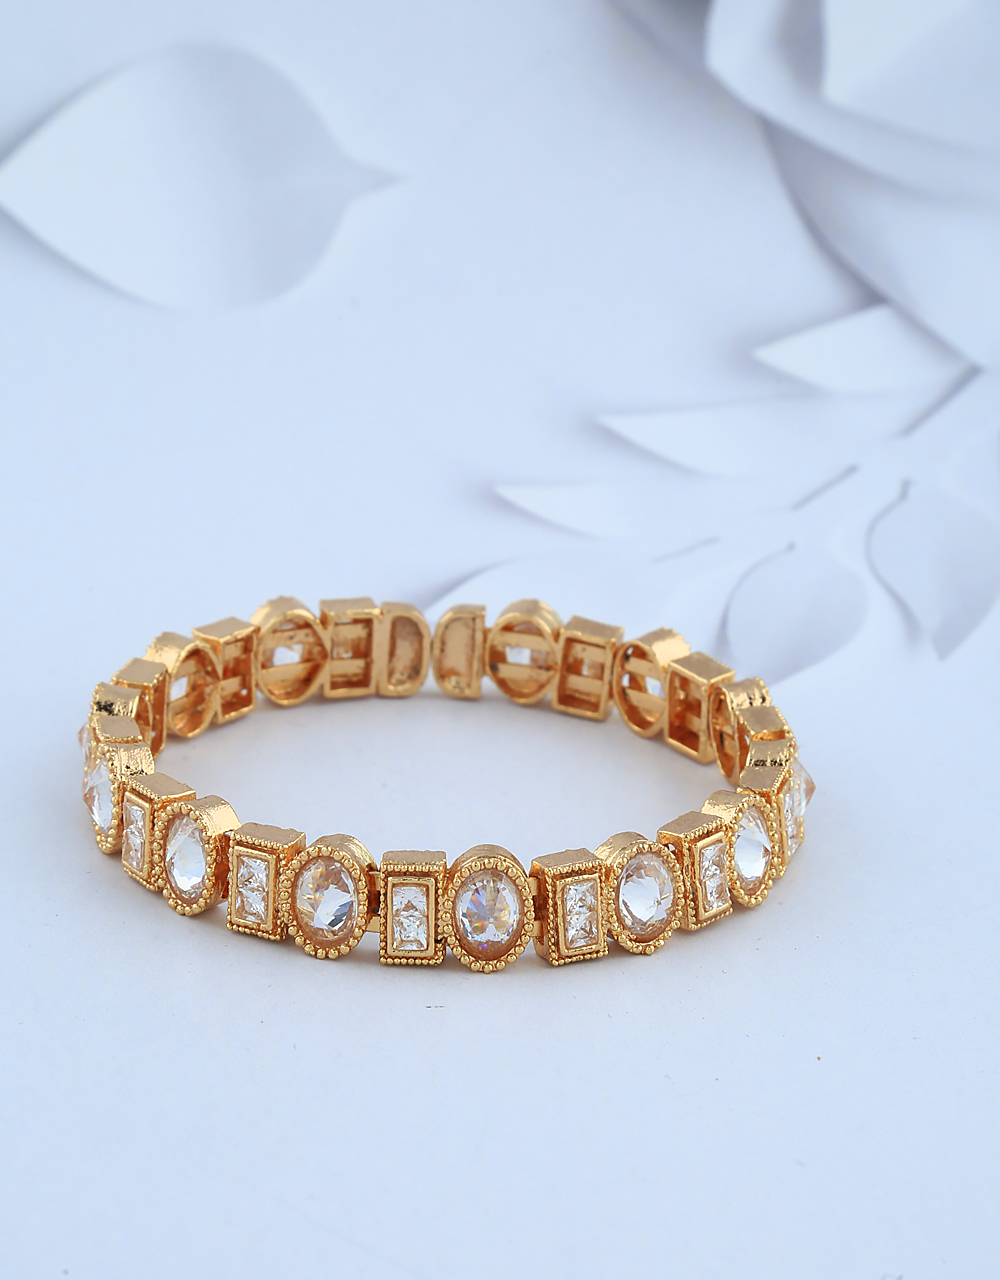 Beautiful Gold-Finish Studded With Lct Stones Square And Circle Designer Bracelet.